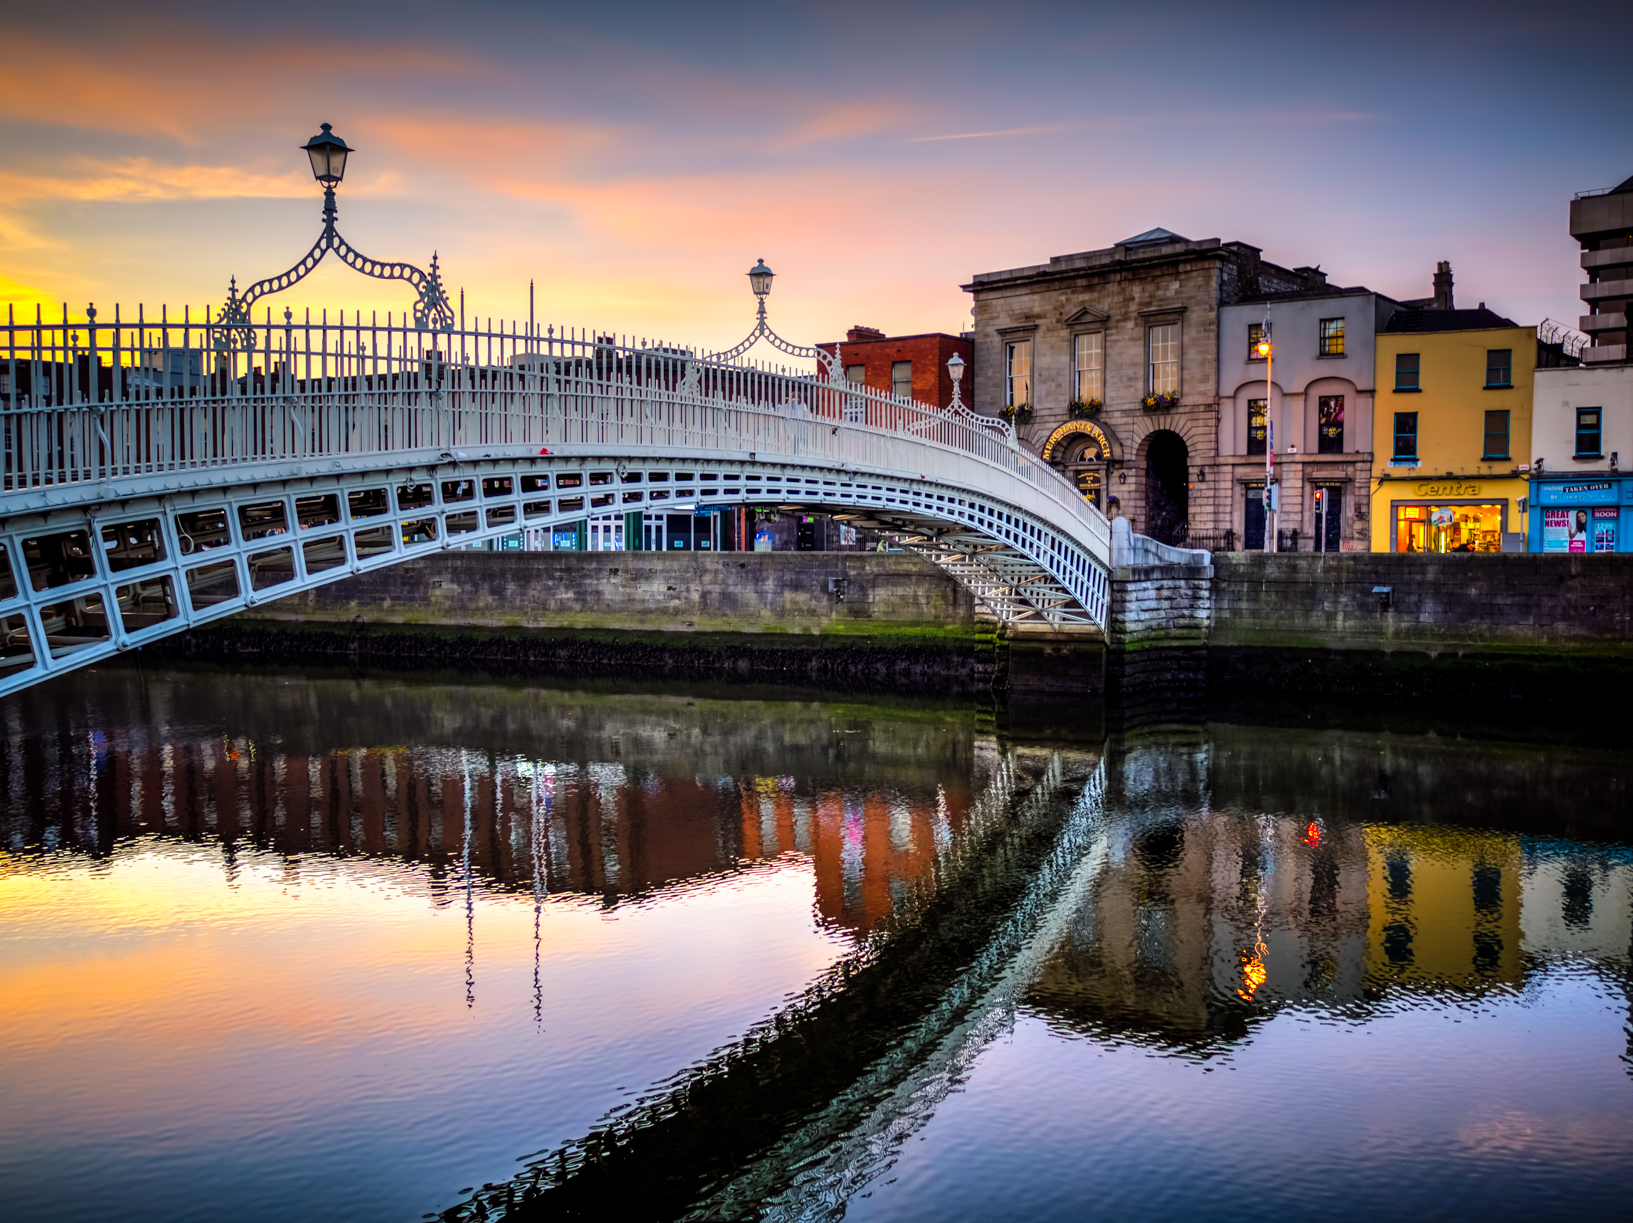 the ha'penny bridge looking all awesome at sunrise over the river liffey